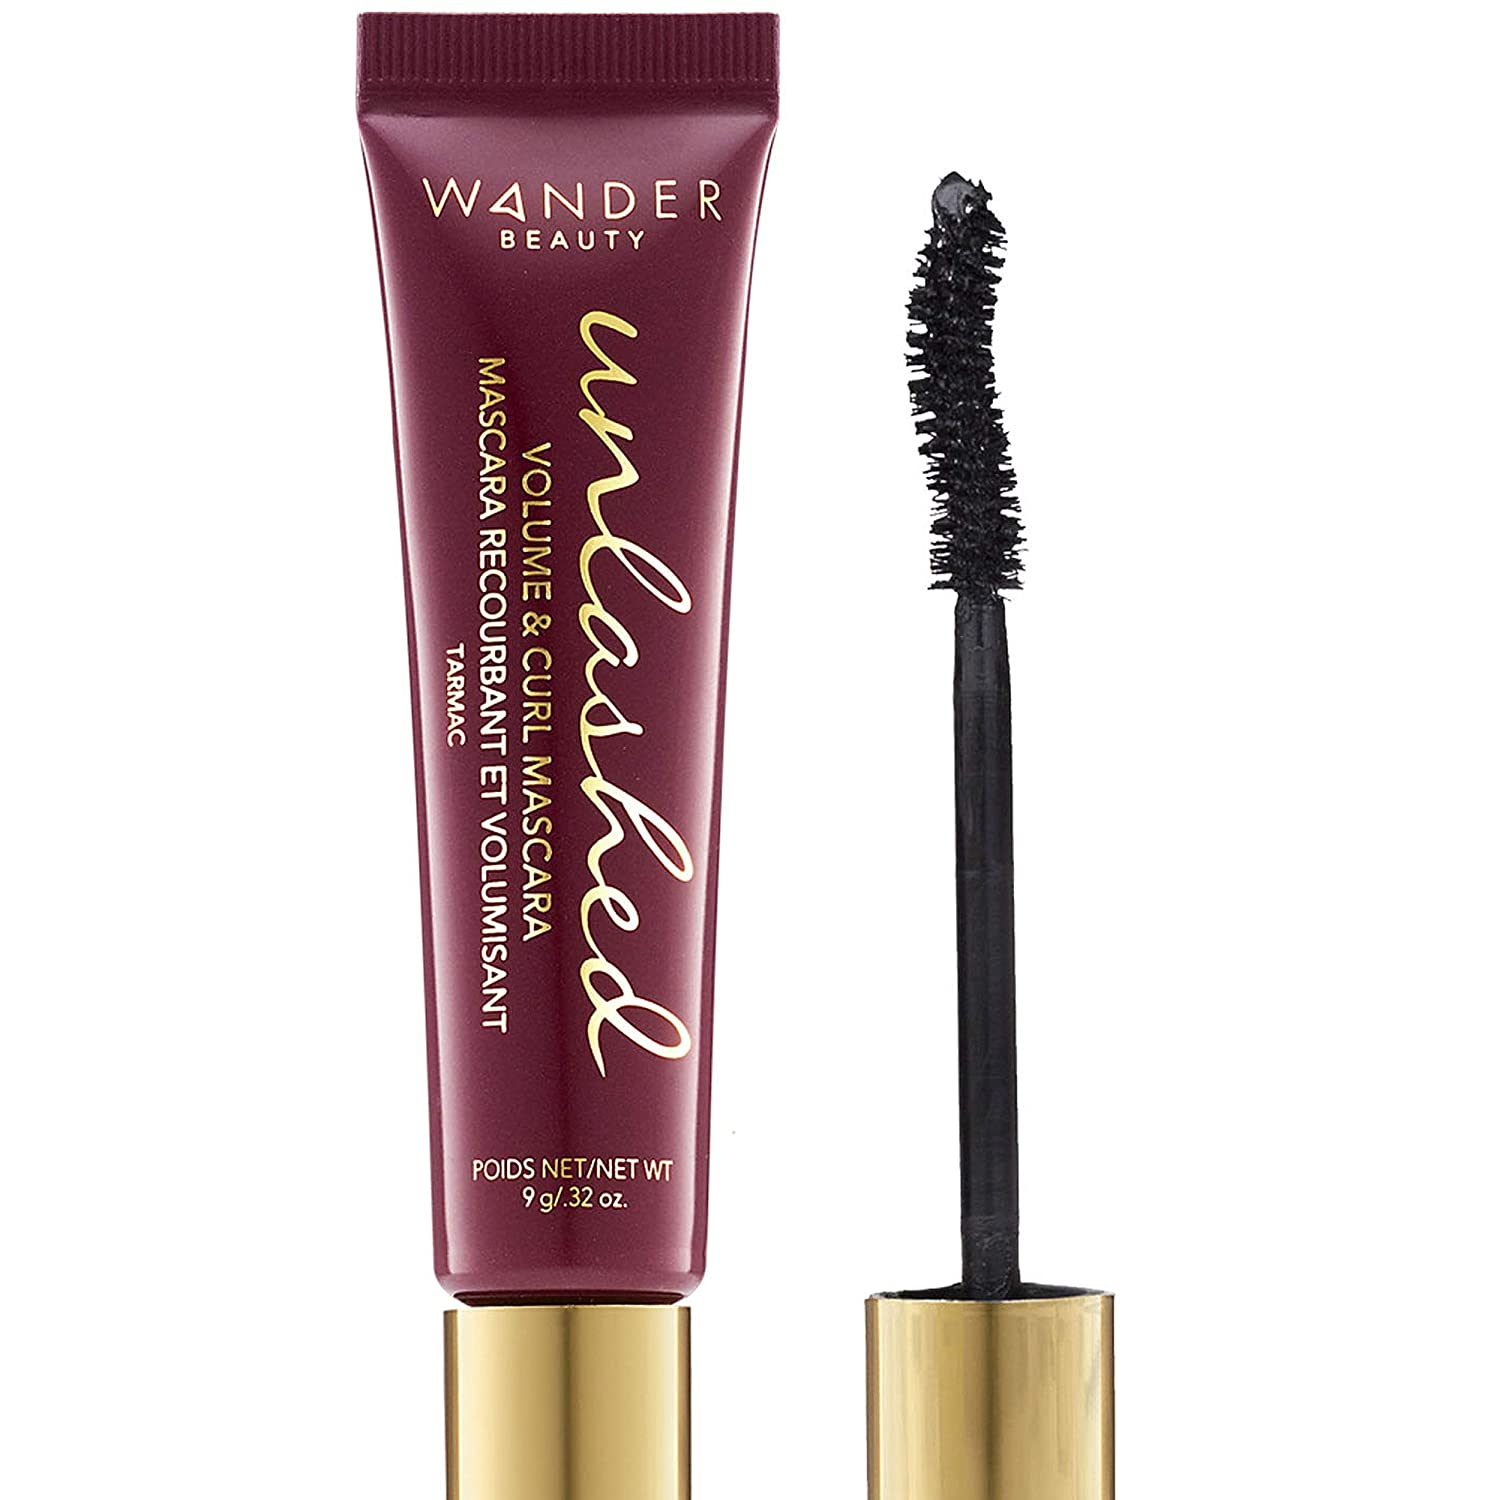 Wander beauty mascara amazon